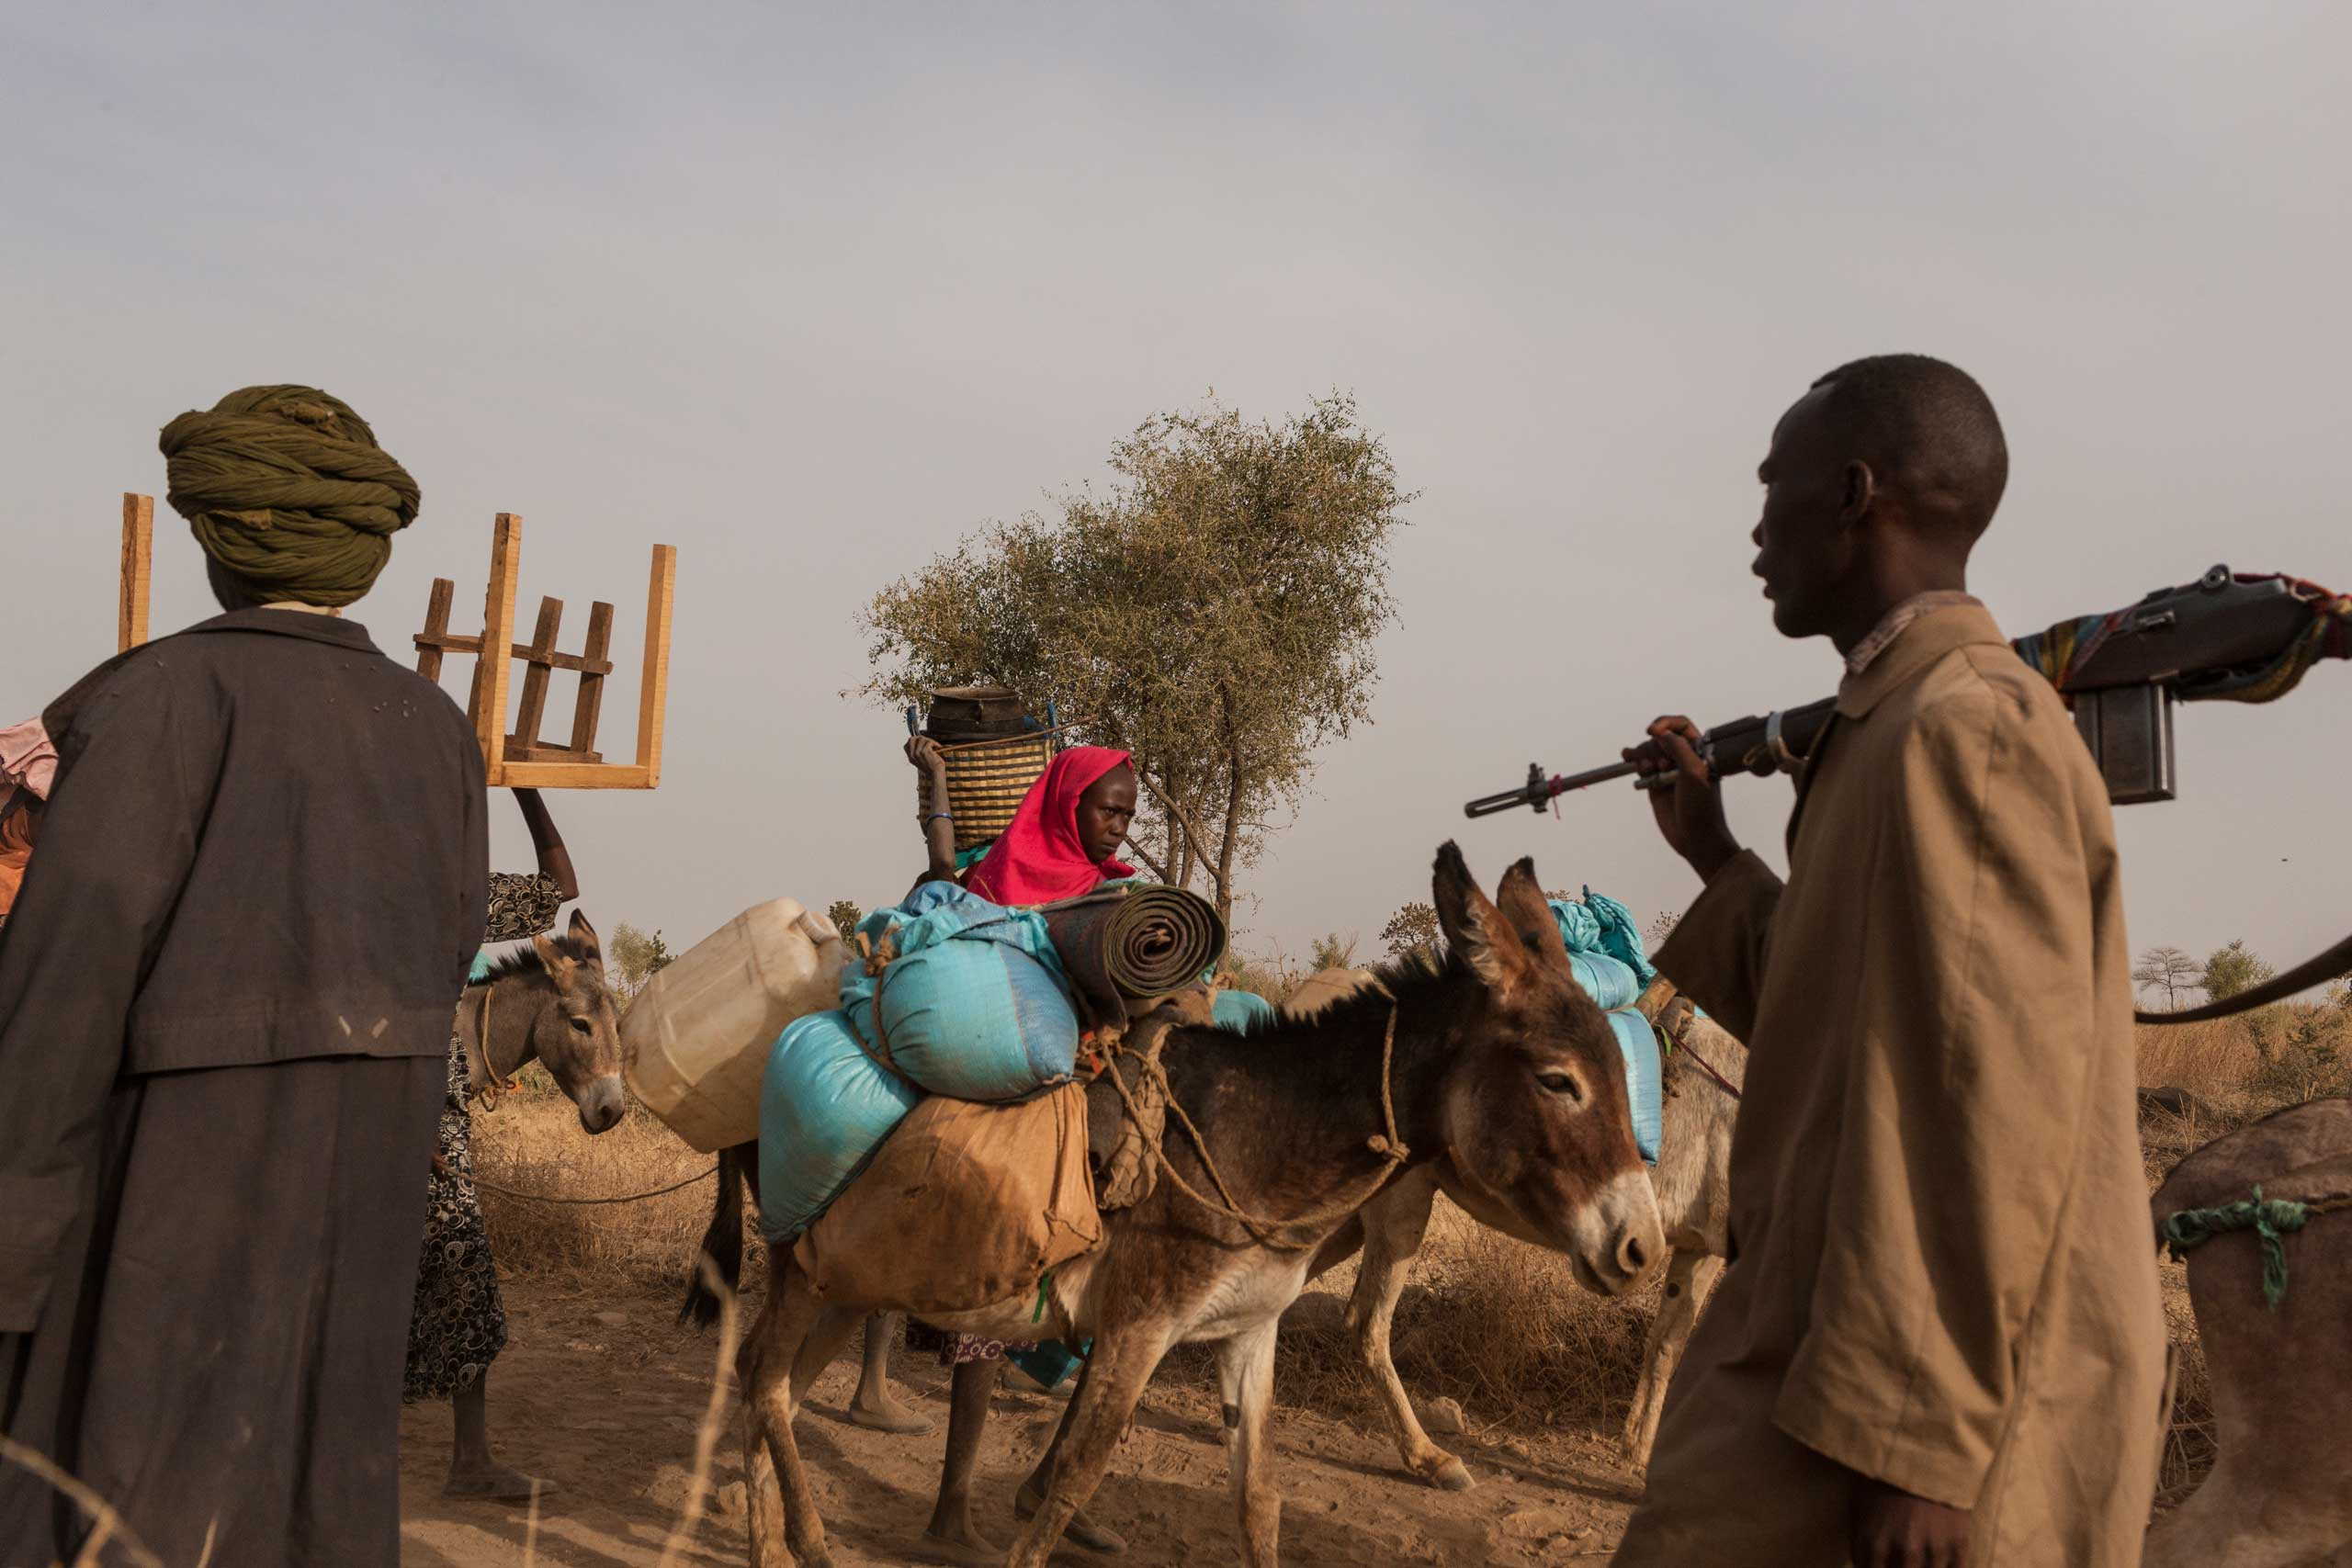 Civilians flee their homes with the few belongings they could carry, while members of the SLA-AW walk toward the front lines in Central Darfur, Sudan, on March 4, 2015.